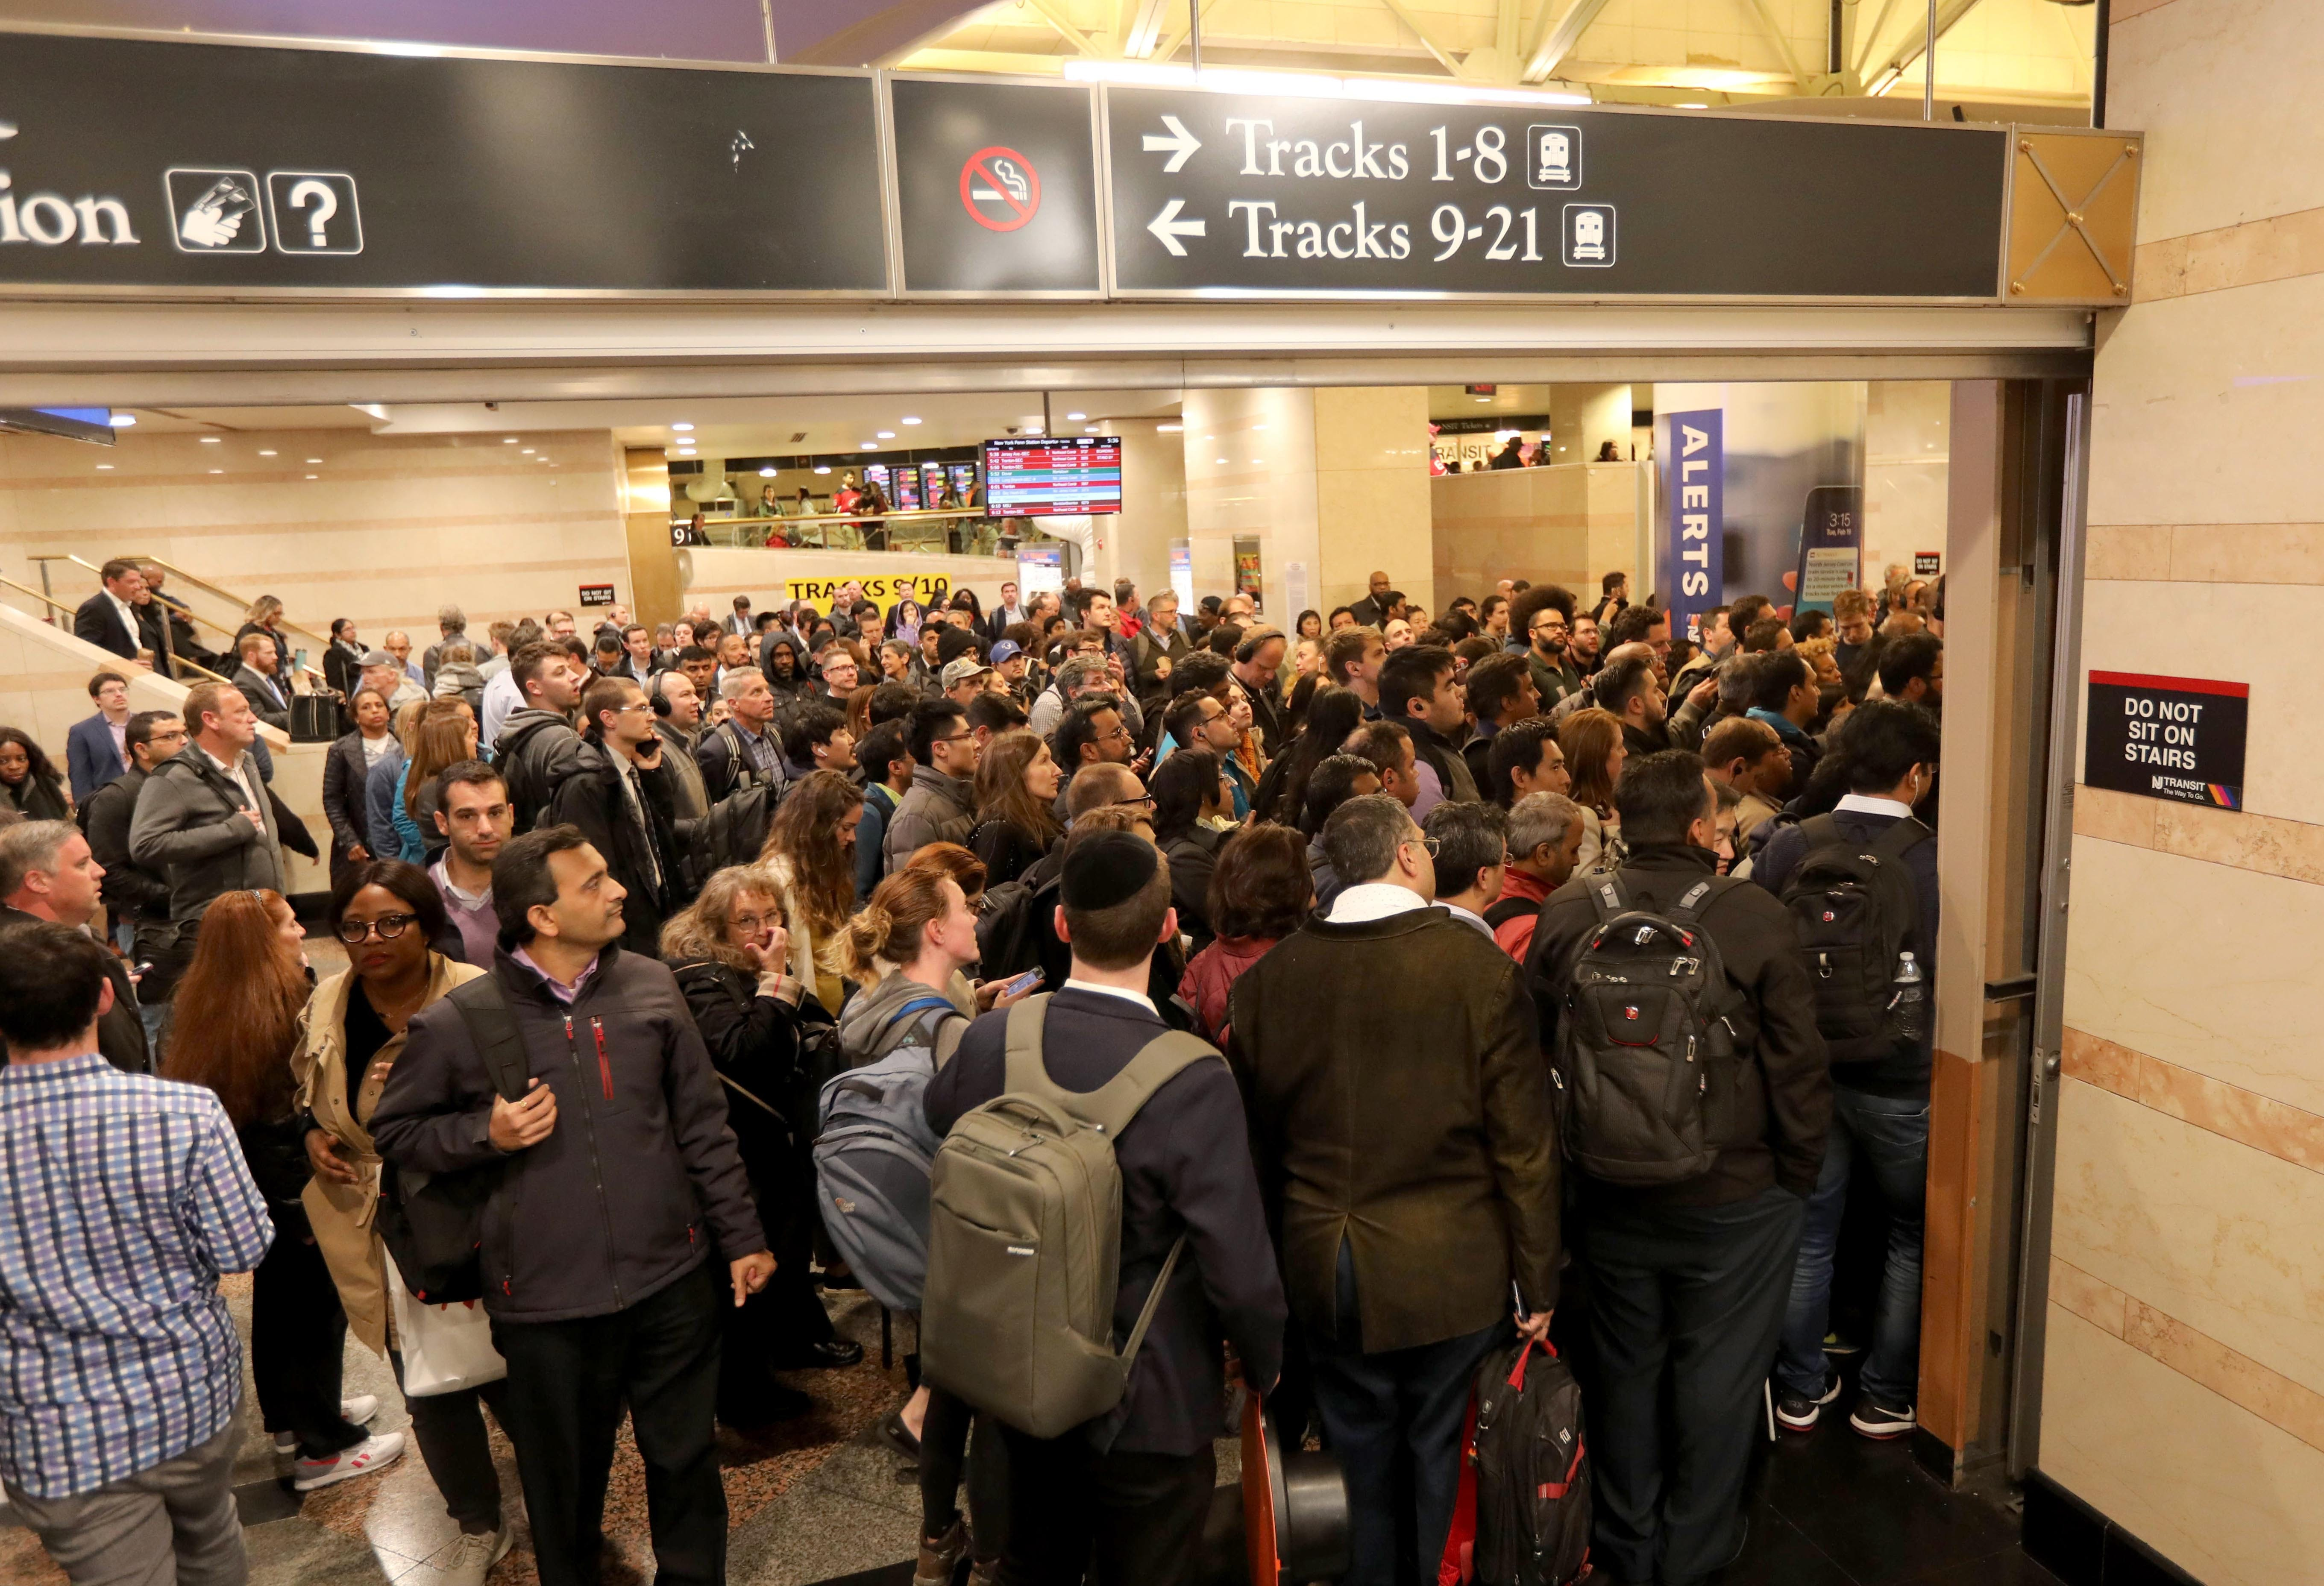 Thousands of commuters make their way towards trains at Penn Station during the evening commute Oct. 17, 2019. After crowding under train schedule boards waiting for gate locations to be posted, commuters rush to their gates, with sometimes only minutes to spare before their train leaves the station.